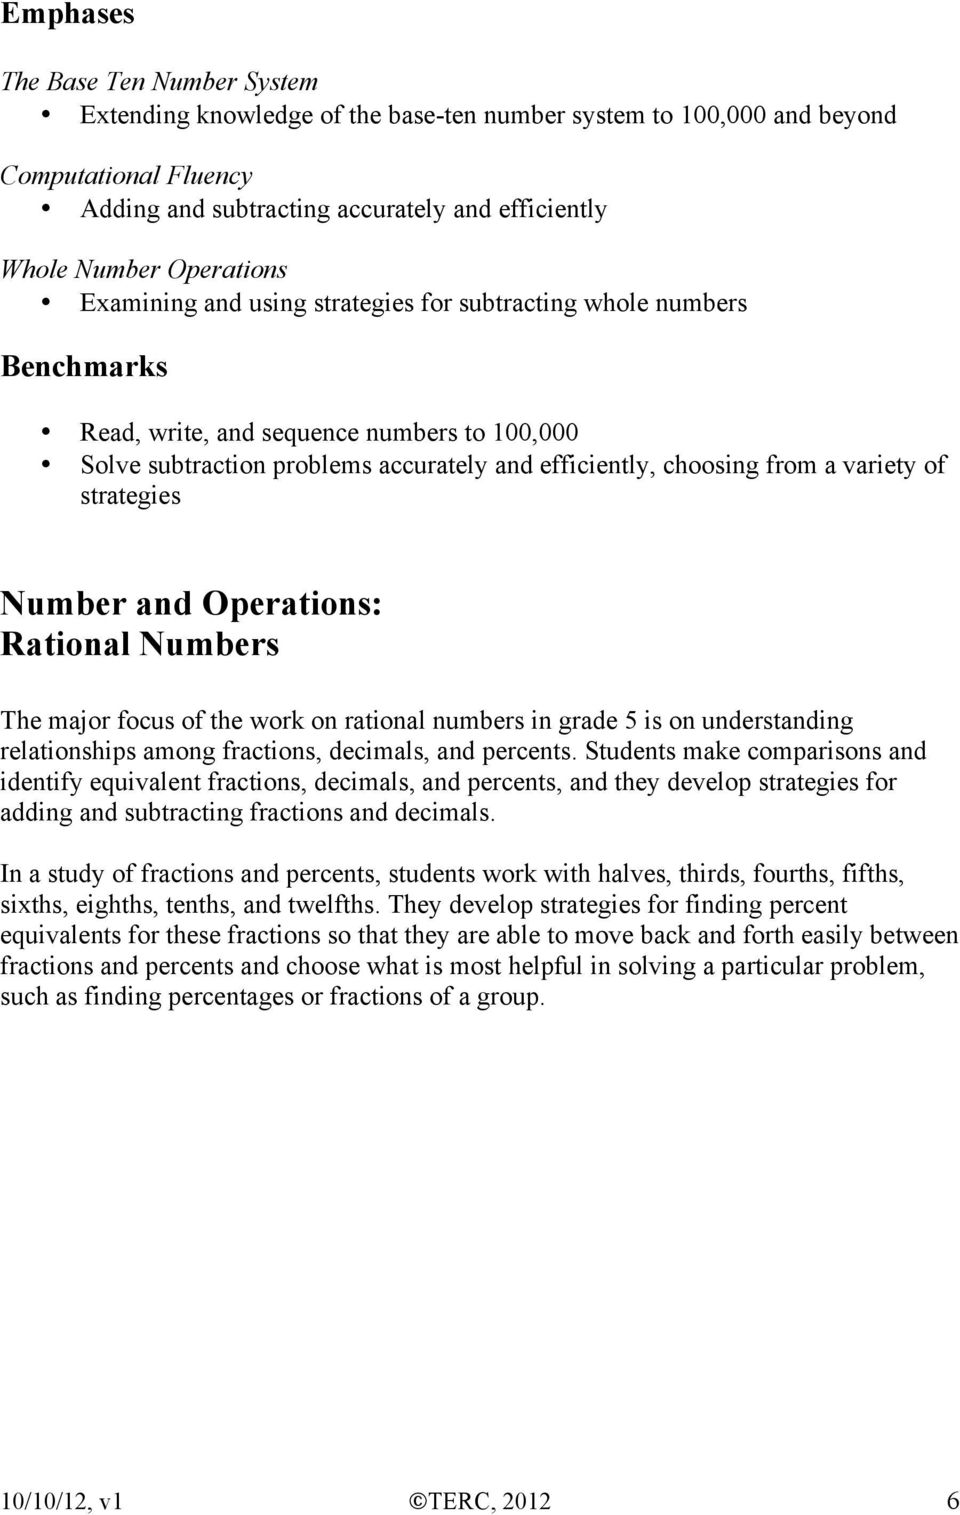 variety of strategies Number and Operations: Rational Numbers The major focus of the work on rational numbers in grade 5 is on understanding relationships among fractions, decimals, and percents.